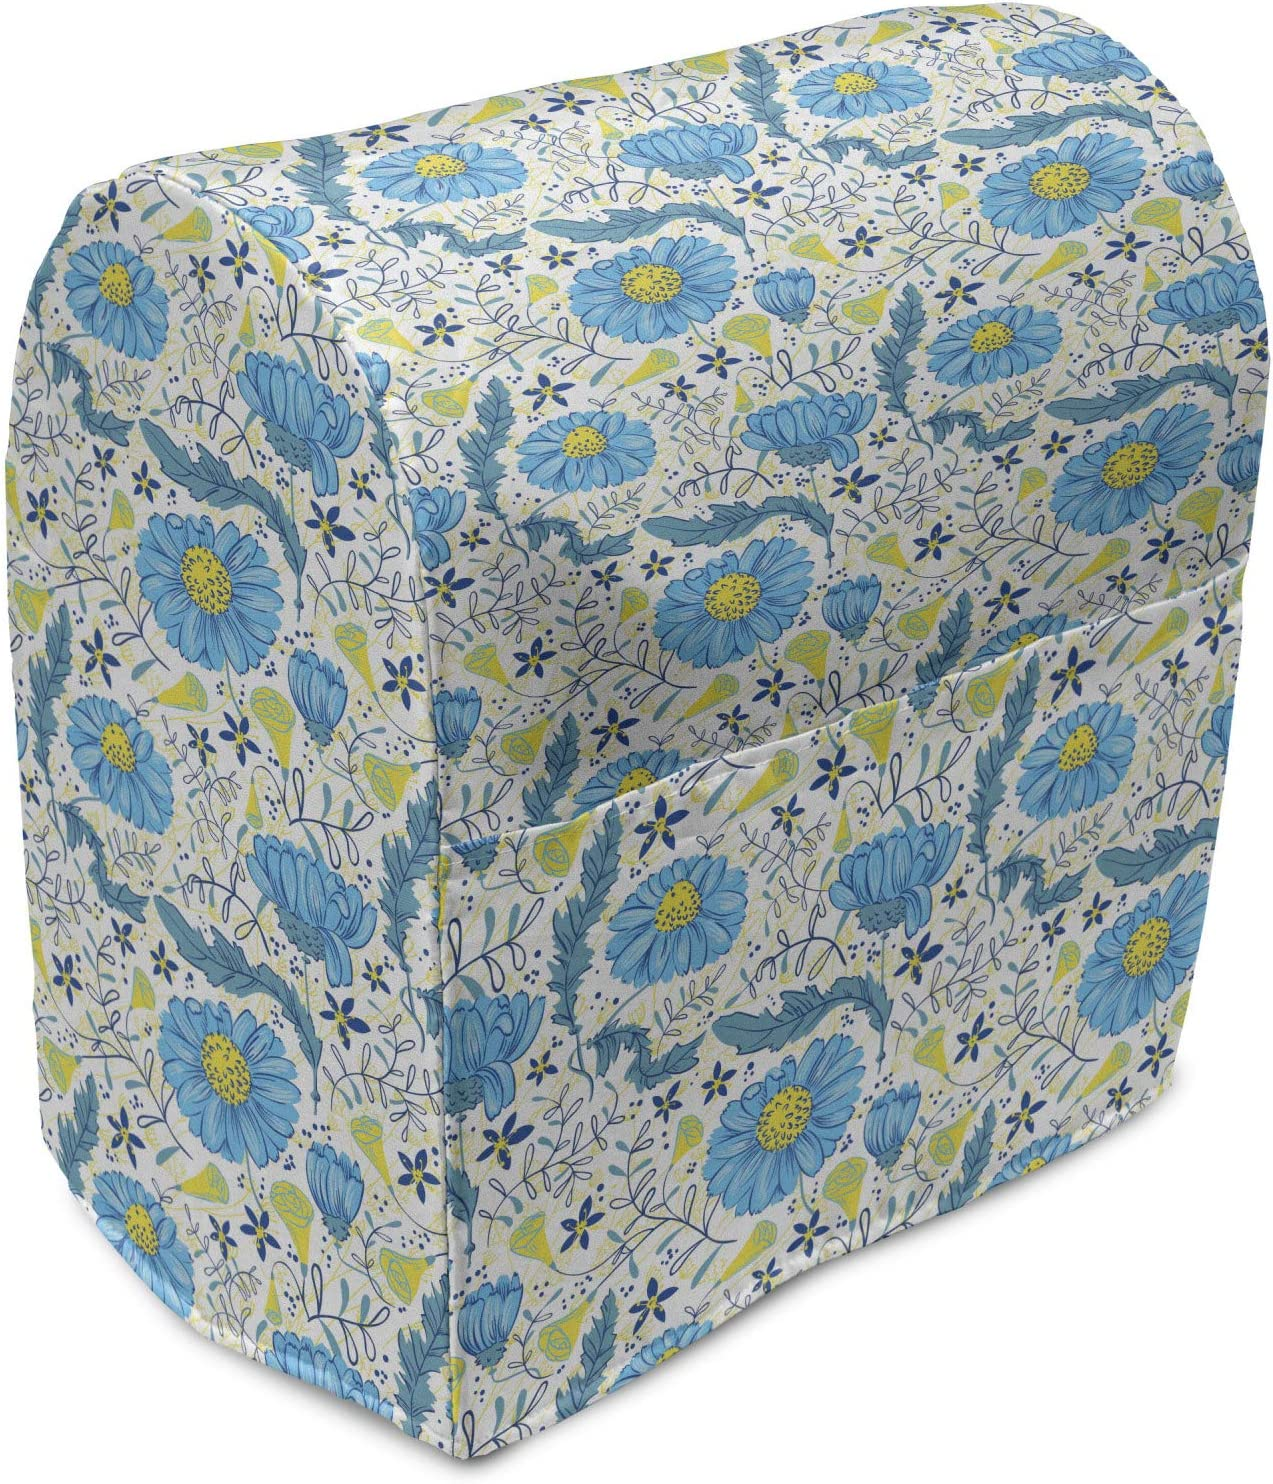 Lunarable Blue security Floral Stand Mixer All stores are sold Field Refreshing Cover Daisy